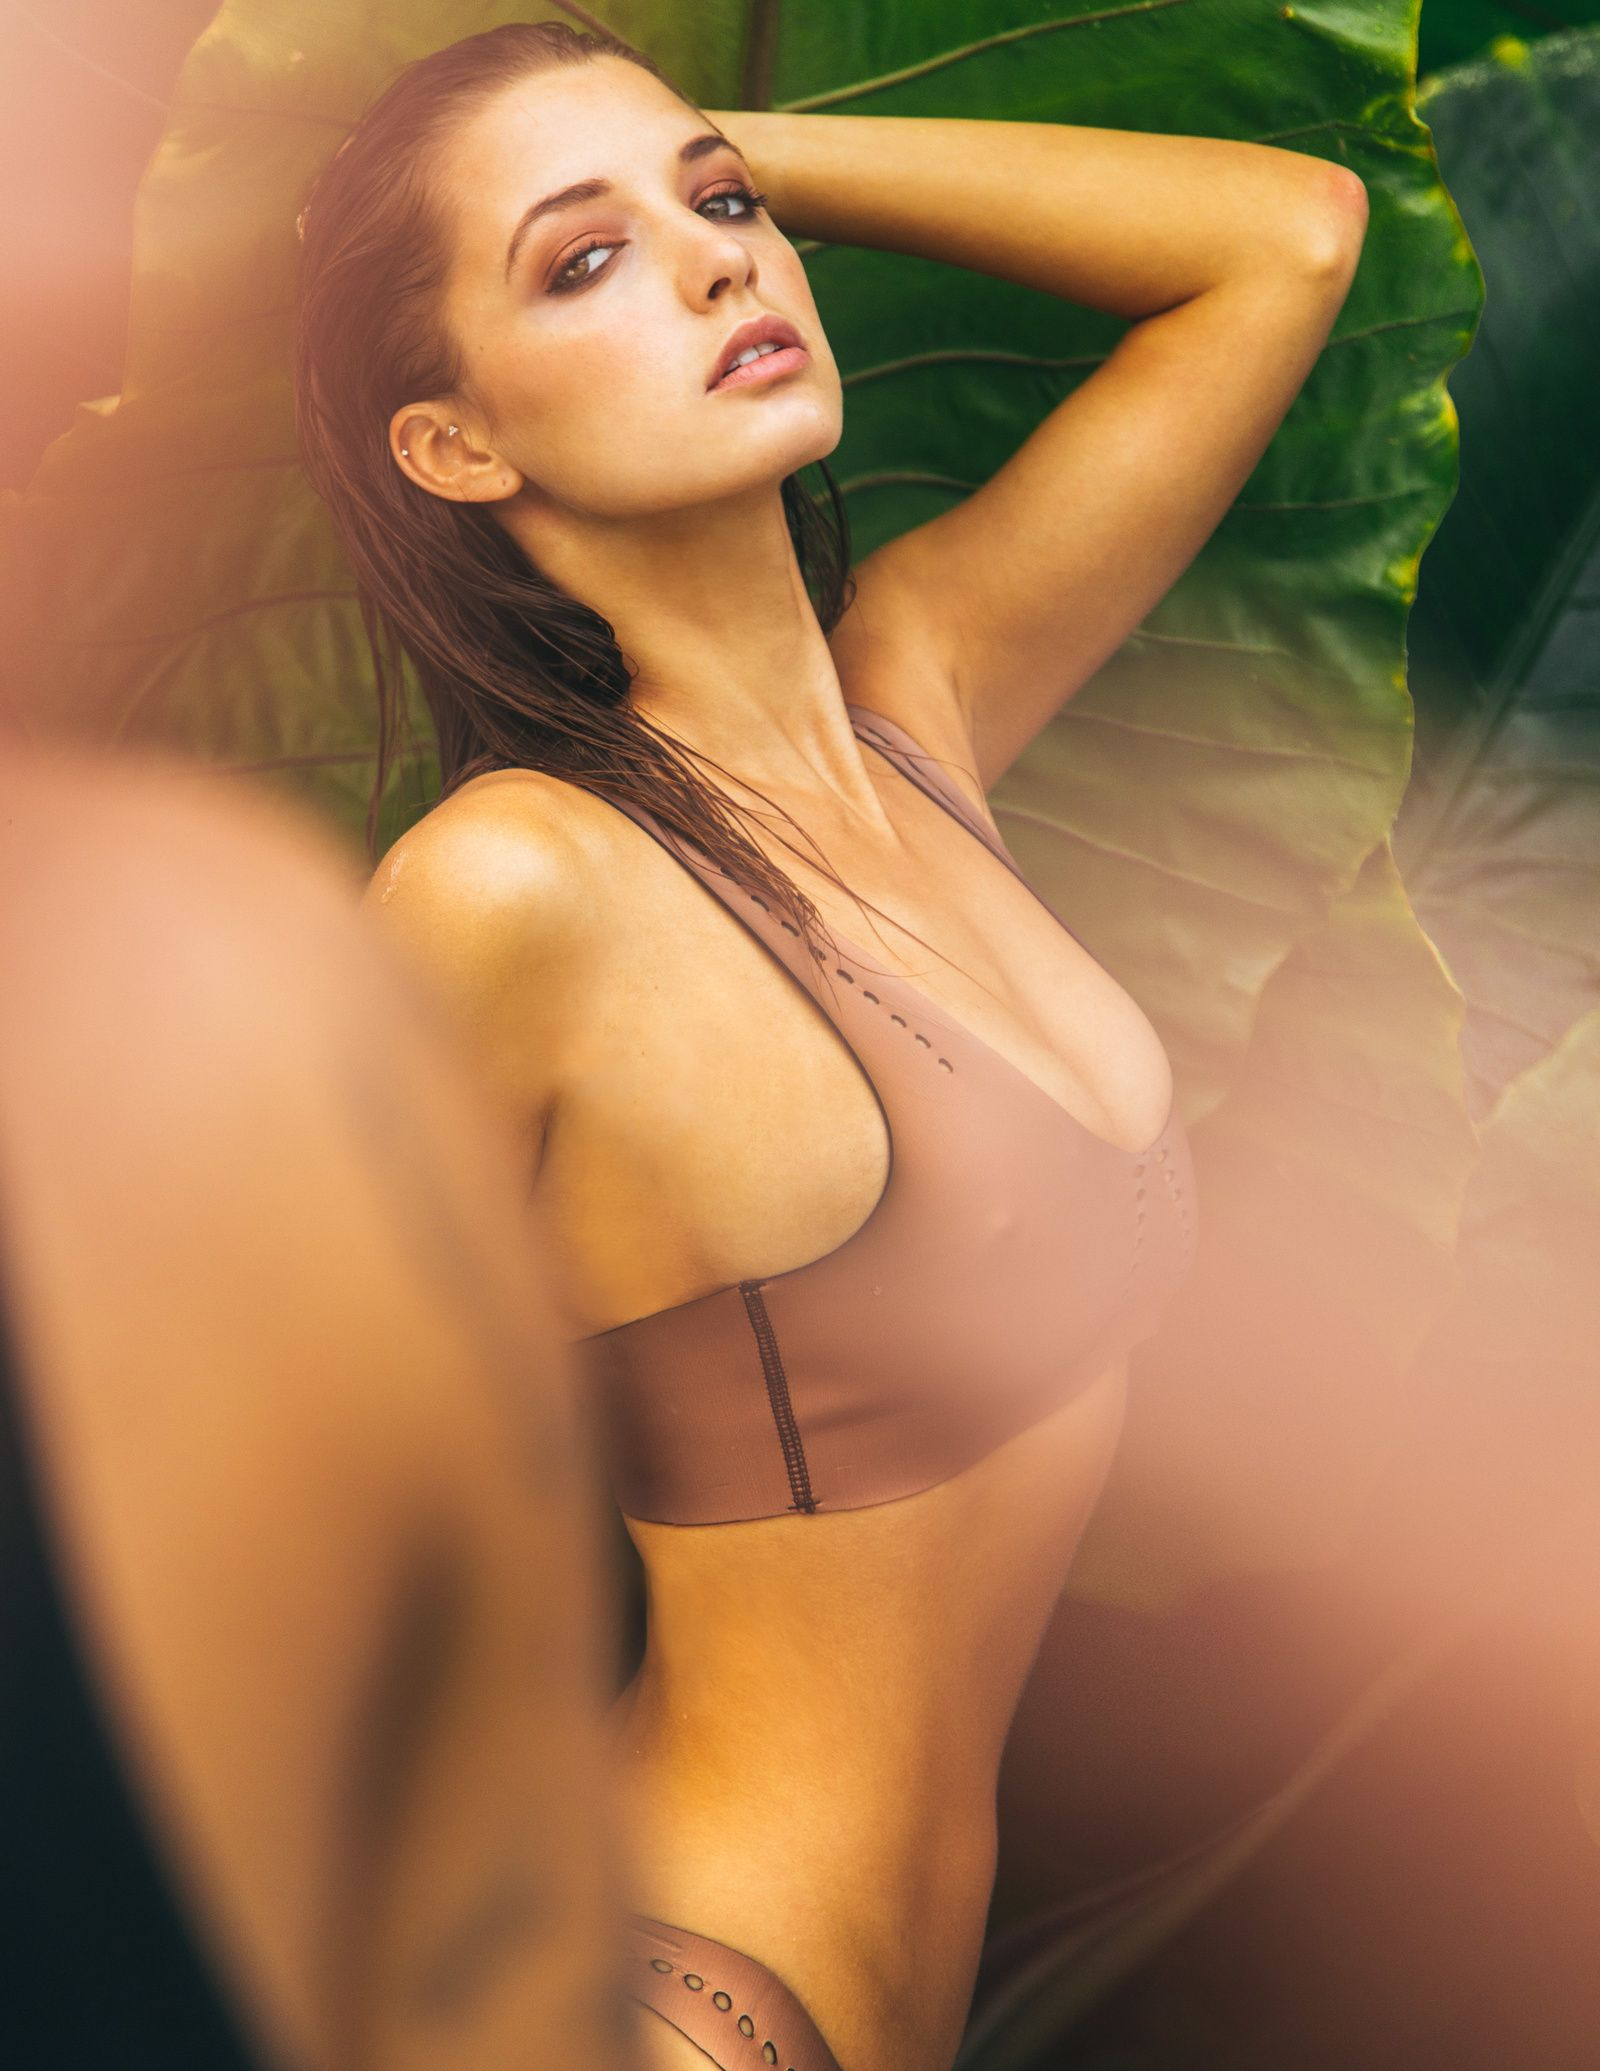 alyssa arce in a bikini & naked (12 photos) | #thefappening